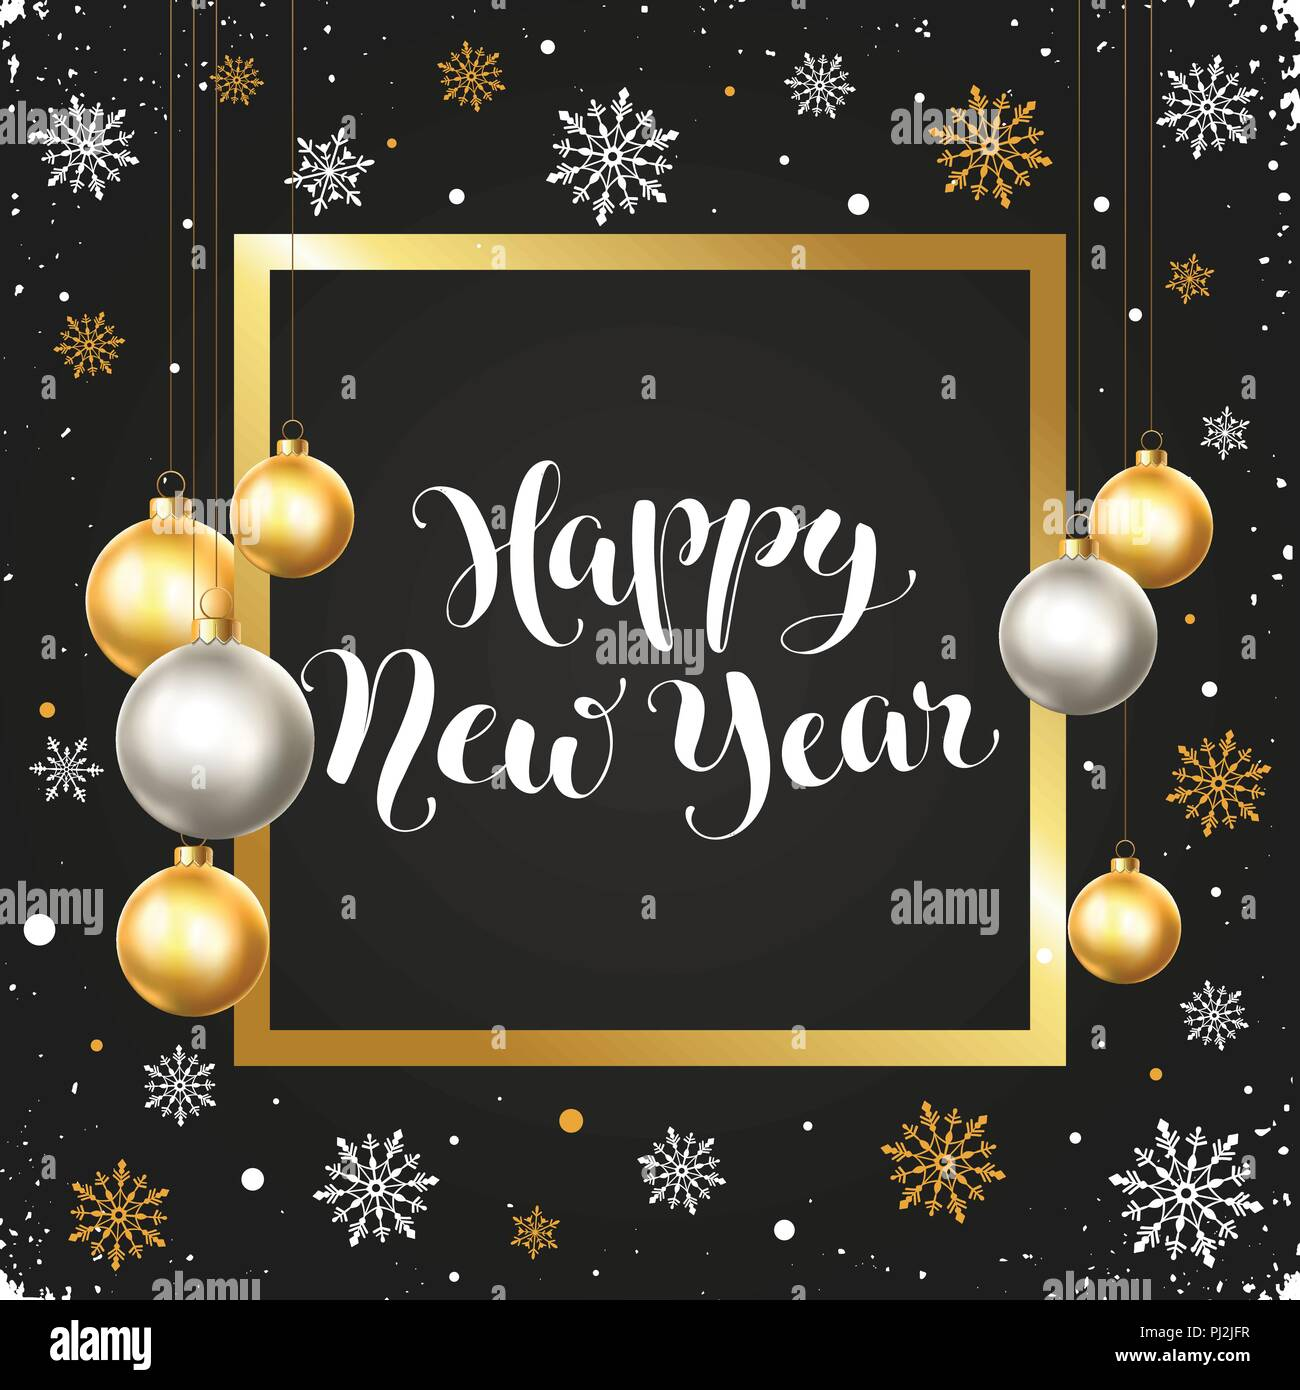 happy new year greeting card template in golden and silver colors modern winter lettering with christmas balls in square frame on chalkboard merry c